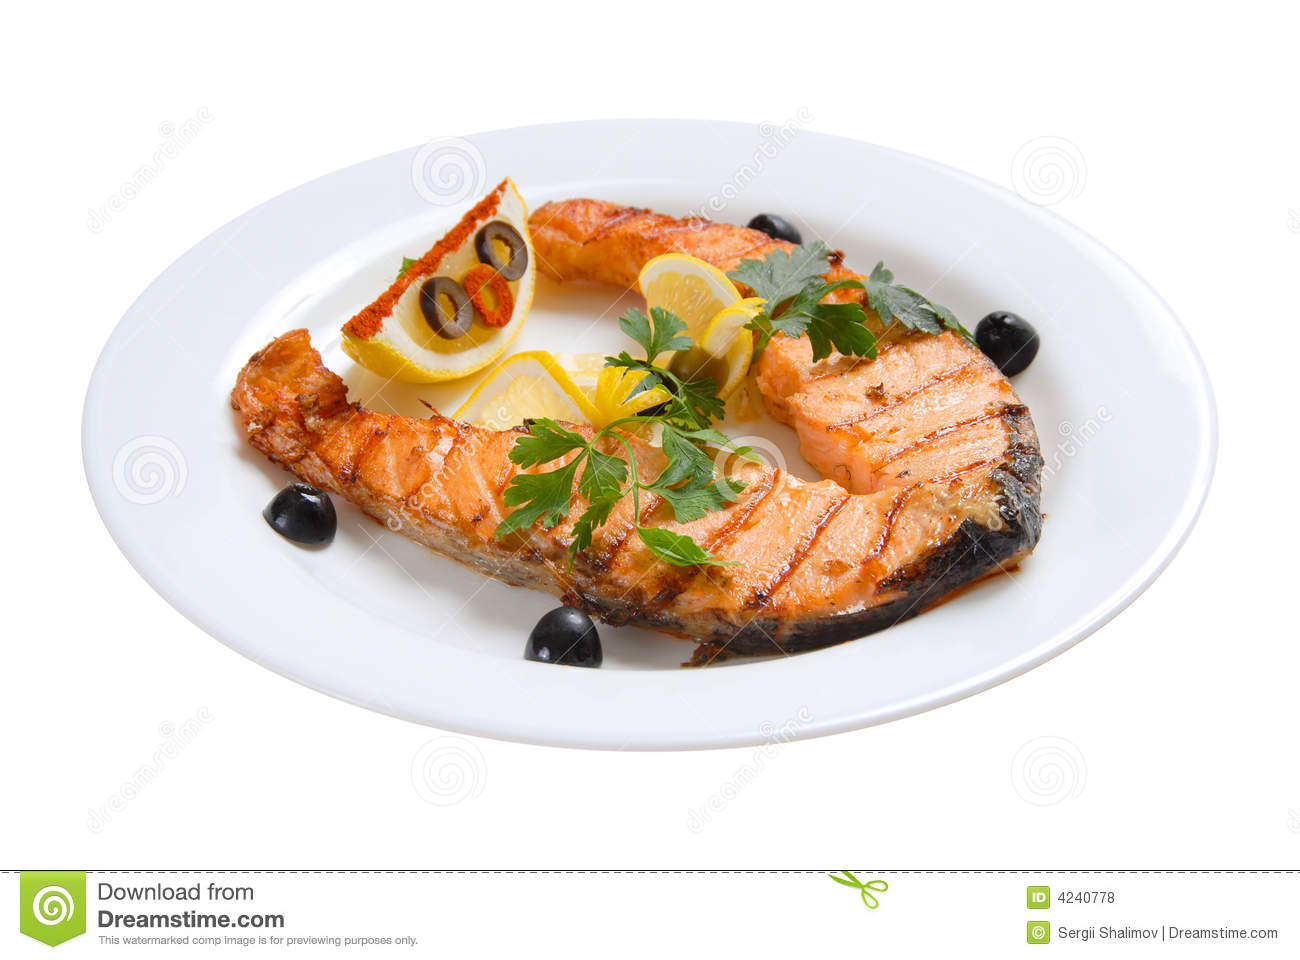 Fish grill royalty free stock photos image 4240778 for The fish grill